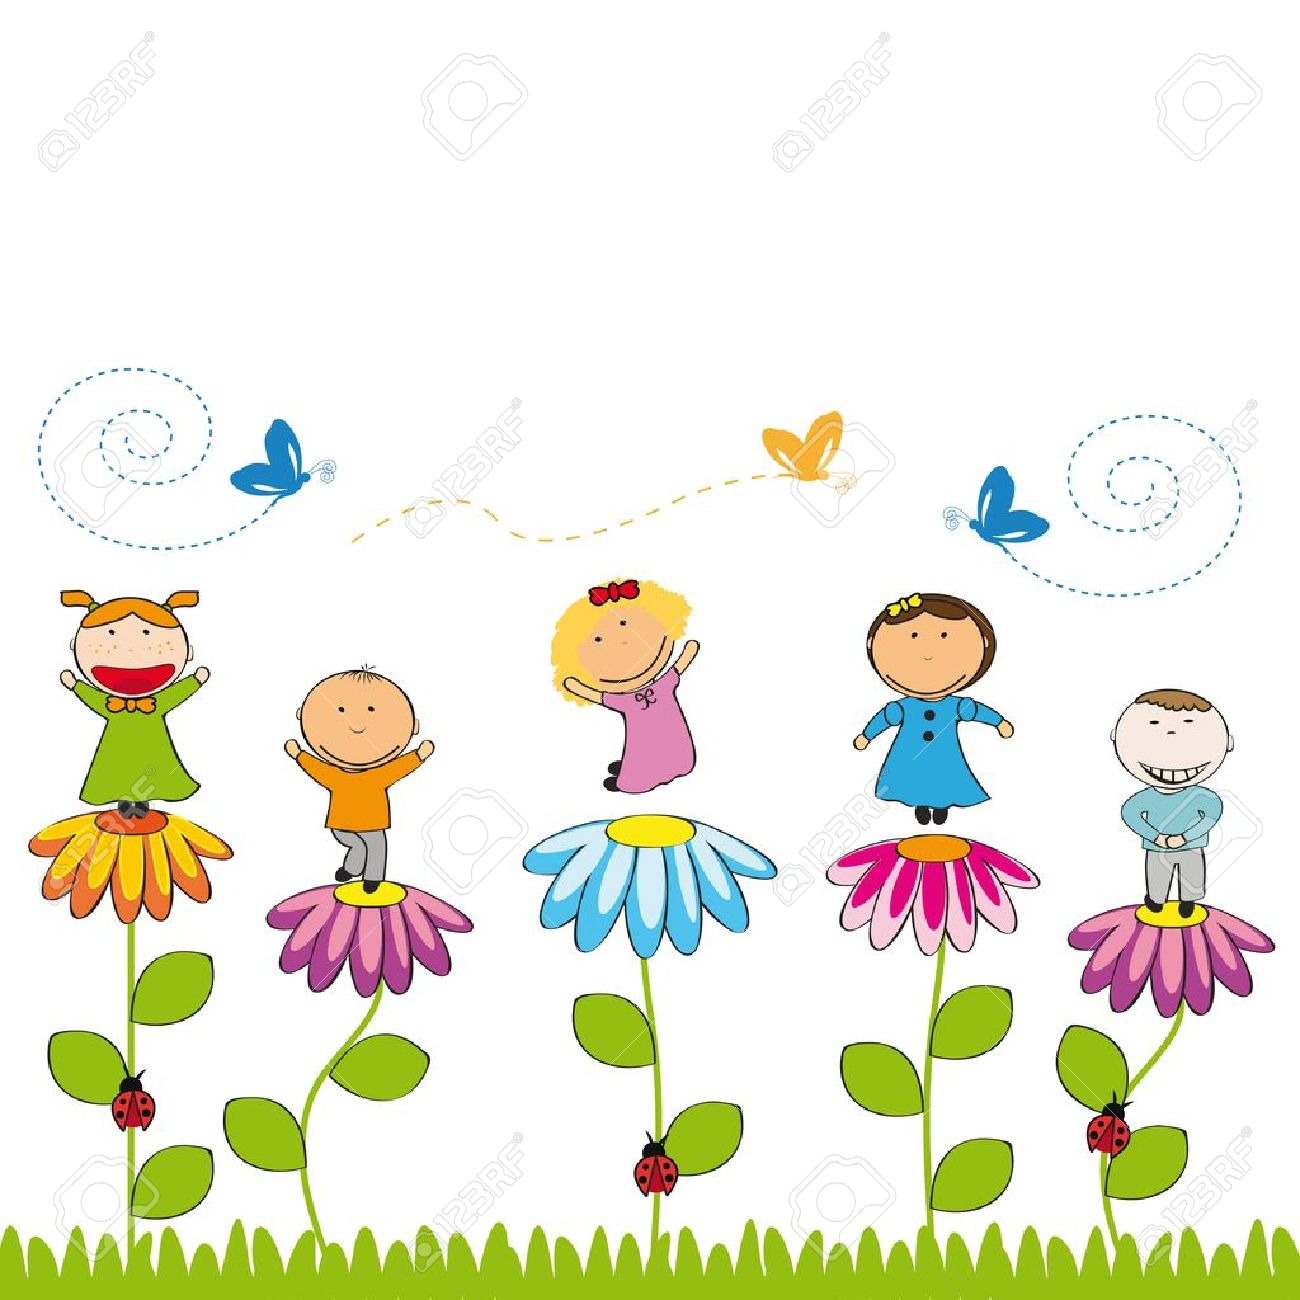 Small and smile kids with flowers in garden Stock Vector - 12976715